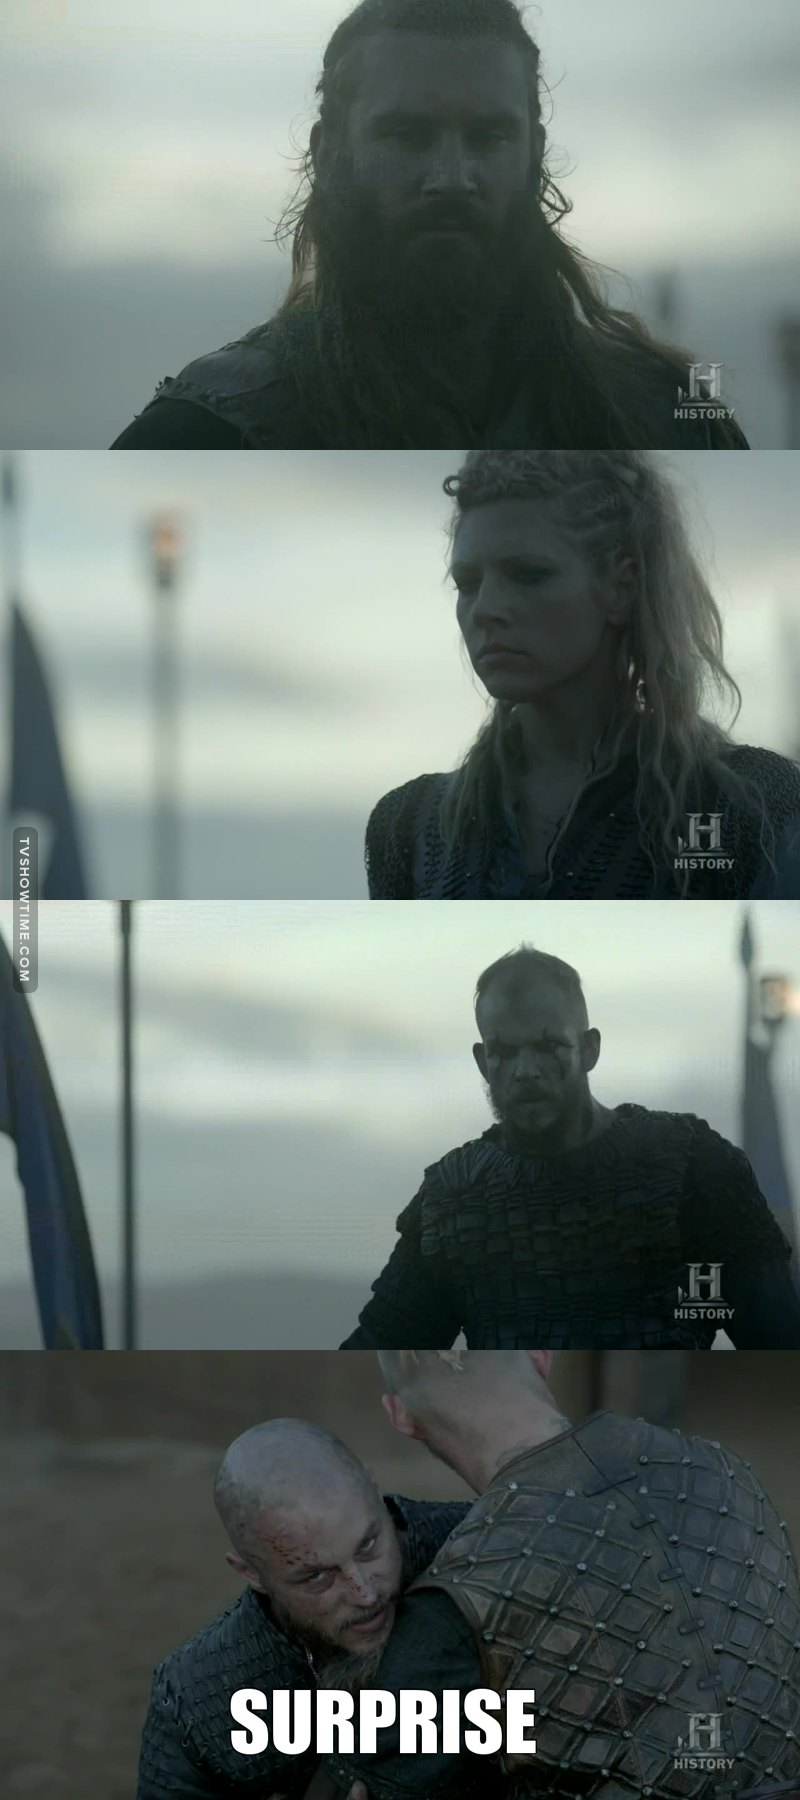 What a scene! Now Ragnar knows the secret of each one of them.